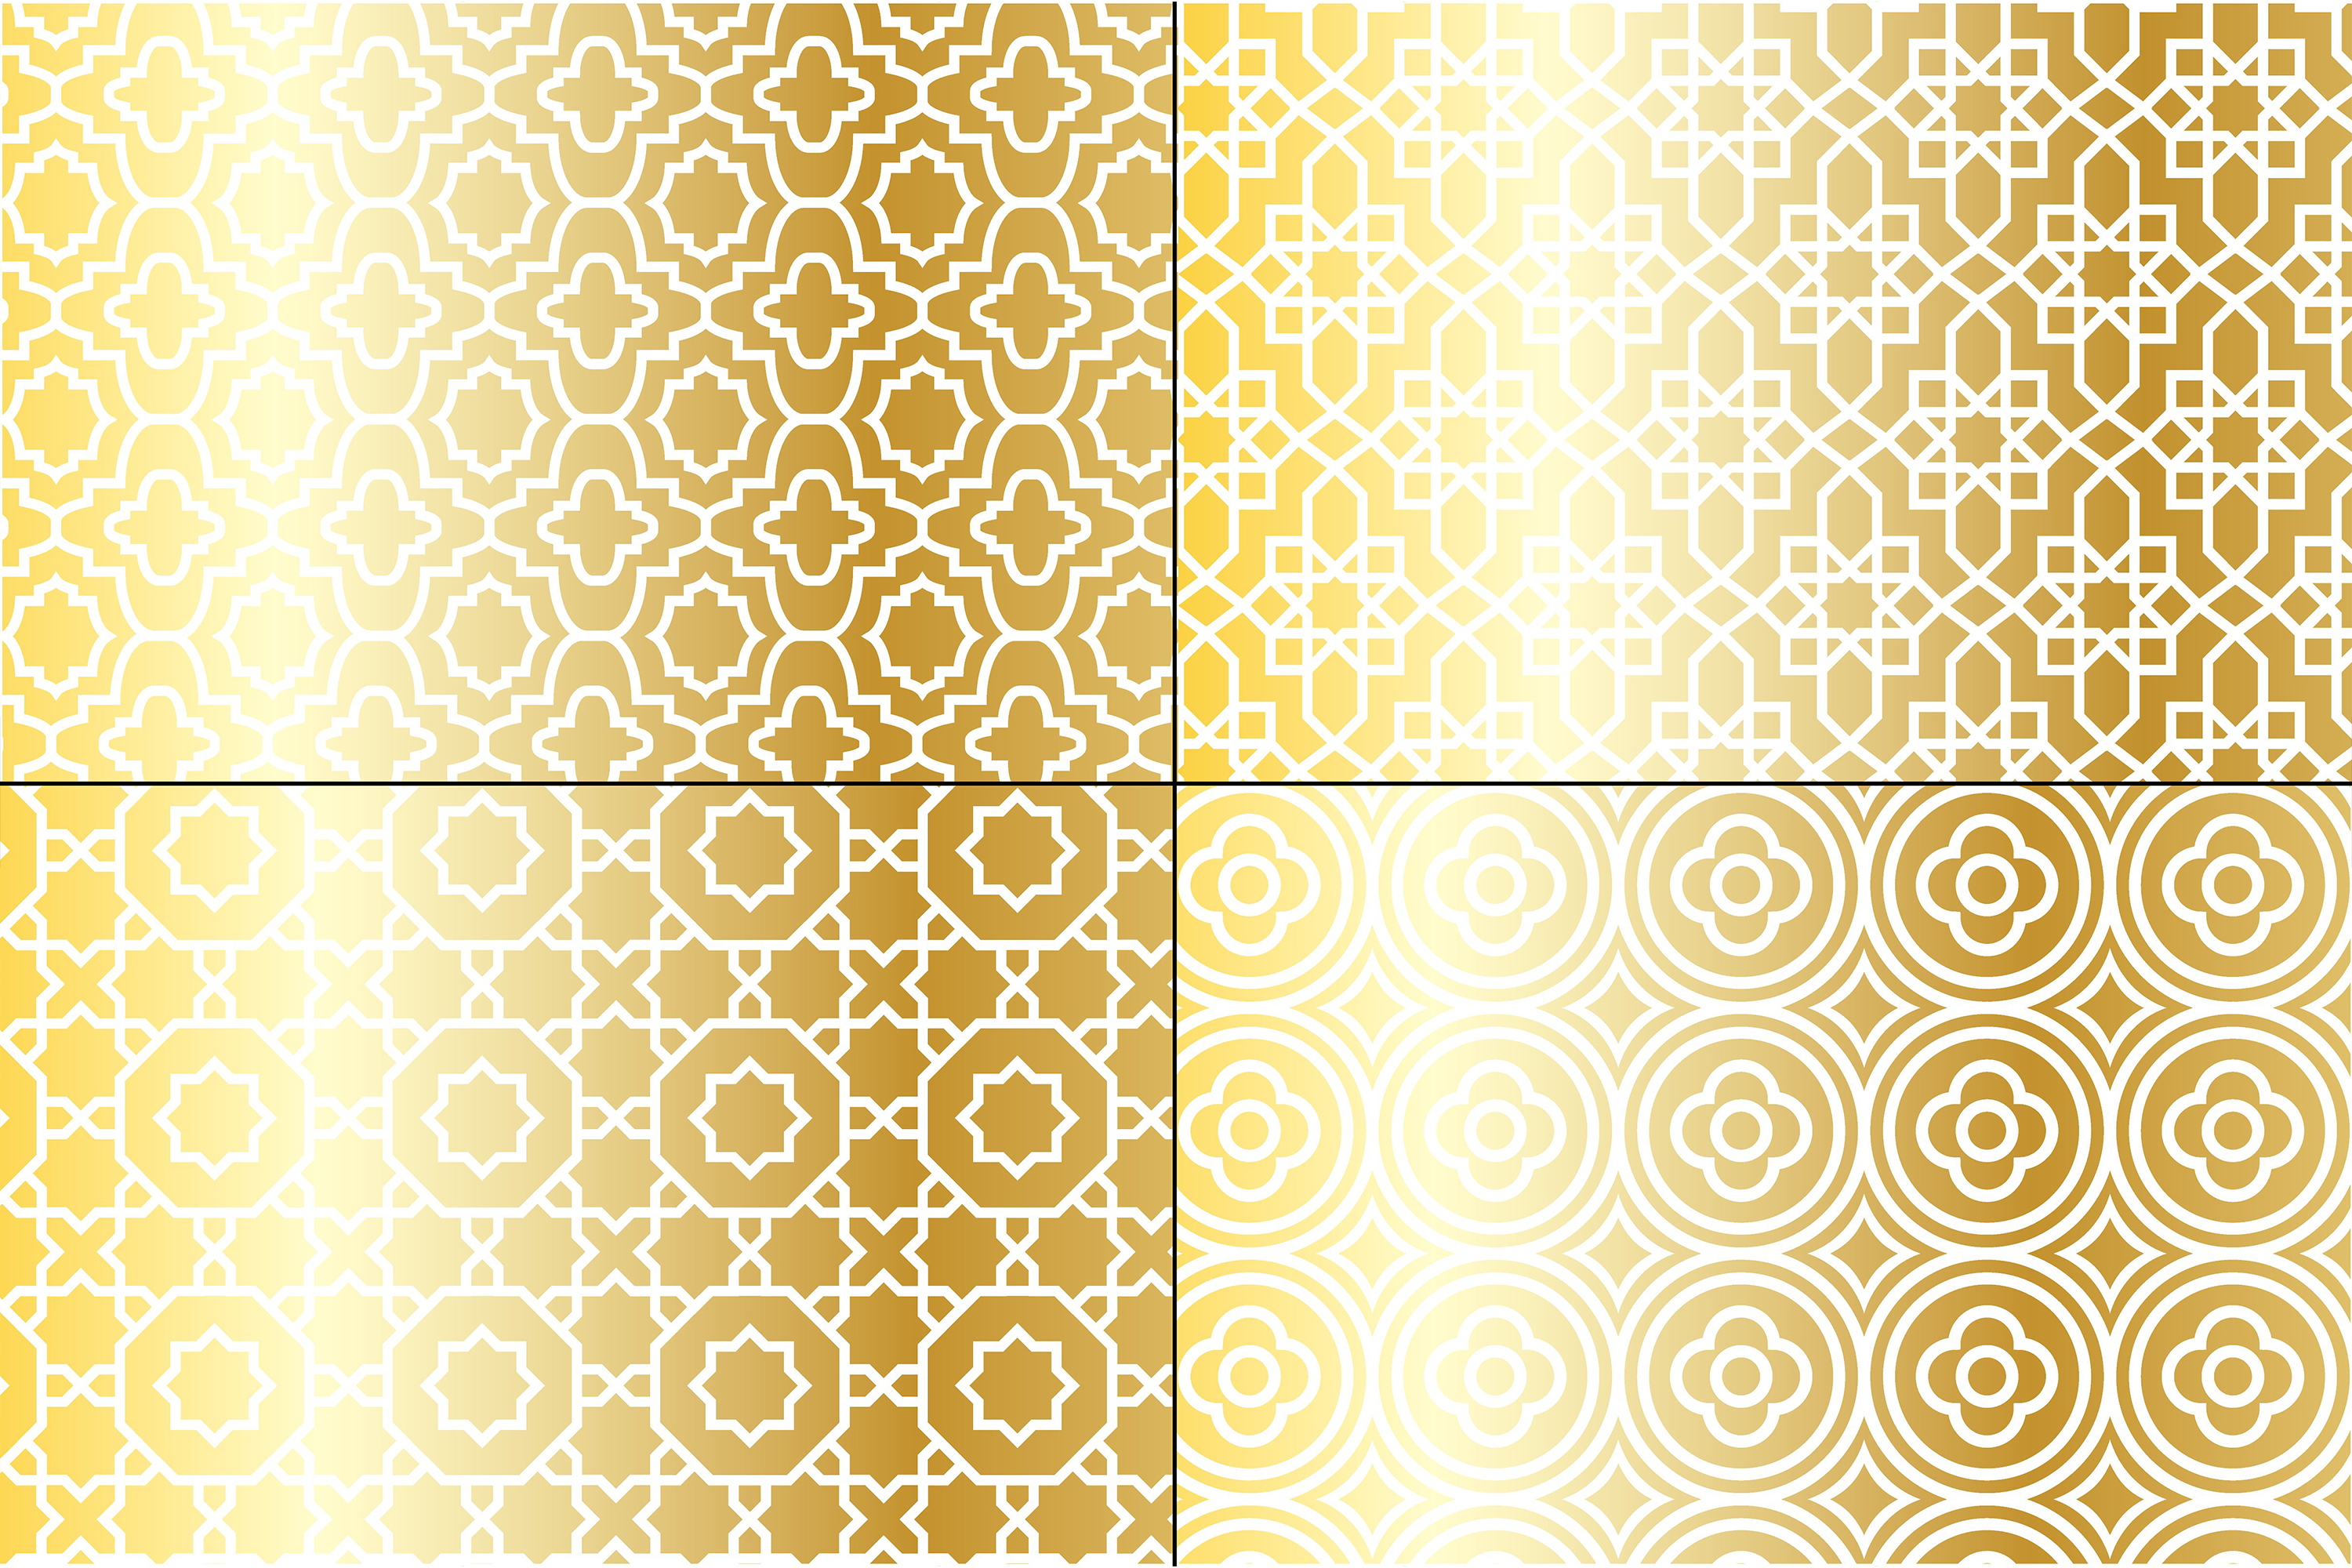 Metallic Gold Moroccan Patterns example image 4